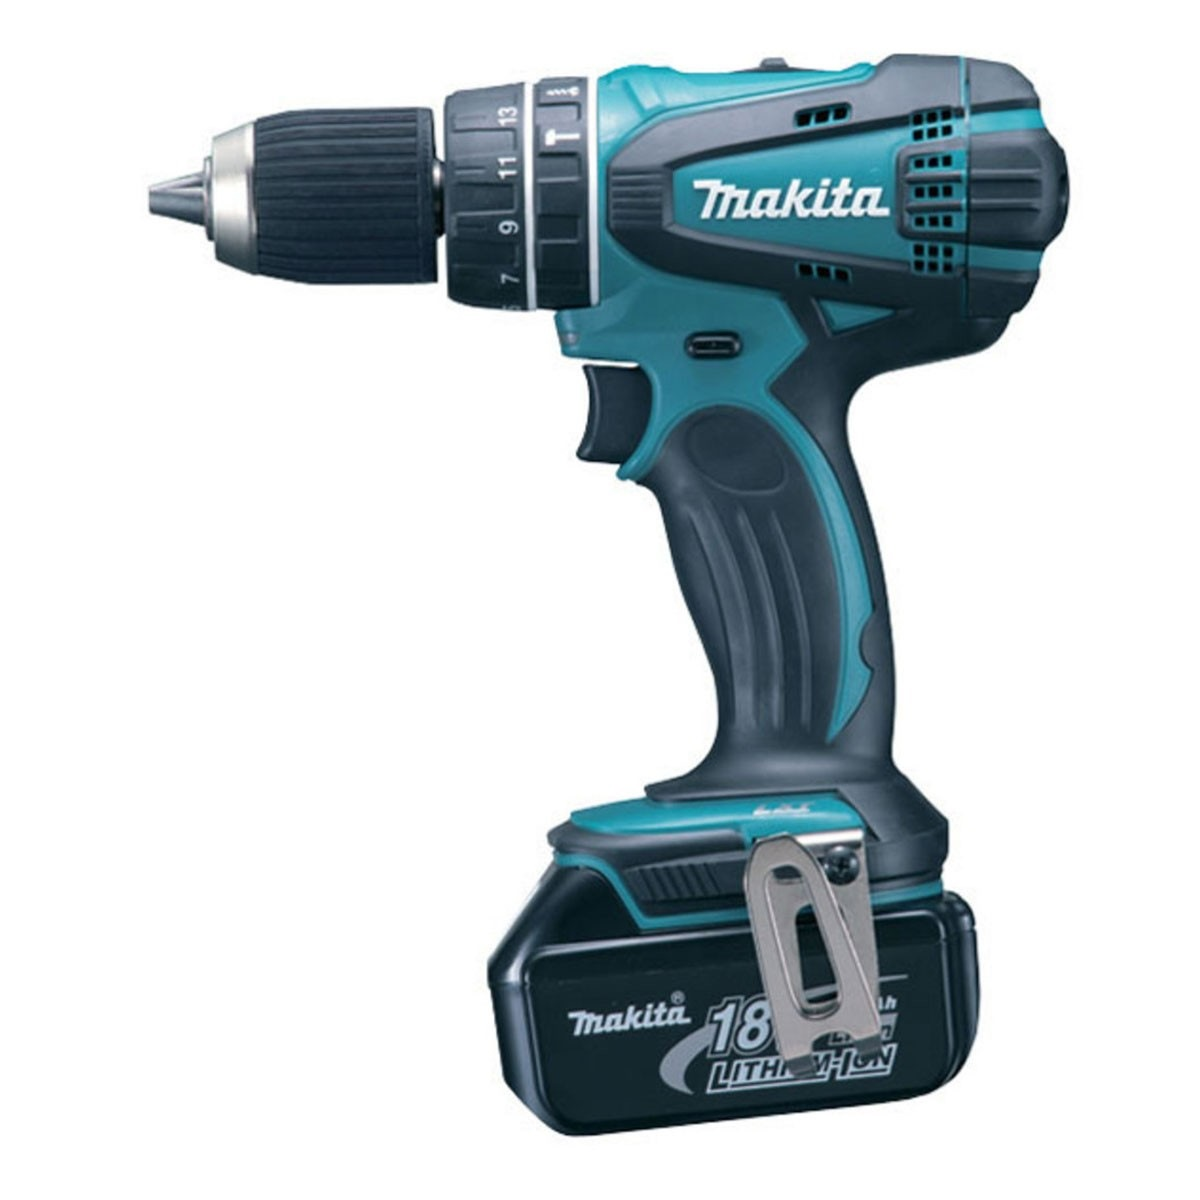 makita 18v 4 0ah li ion 13mm hammer drill dhp456rme. Black Bedroom Furniture Sets. Home Design Ideas